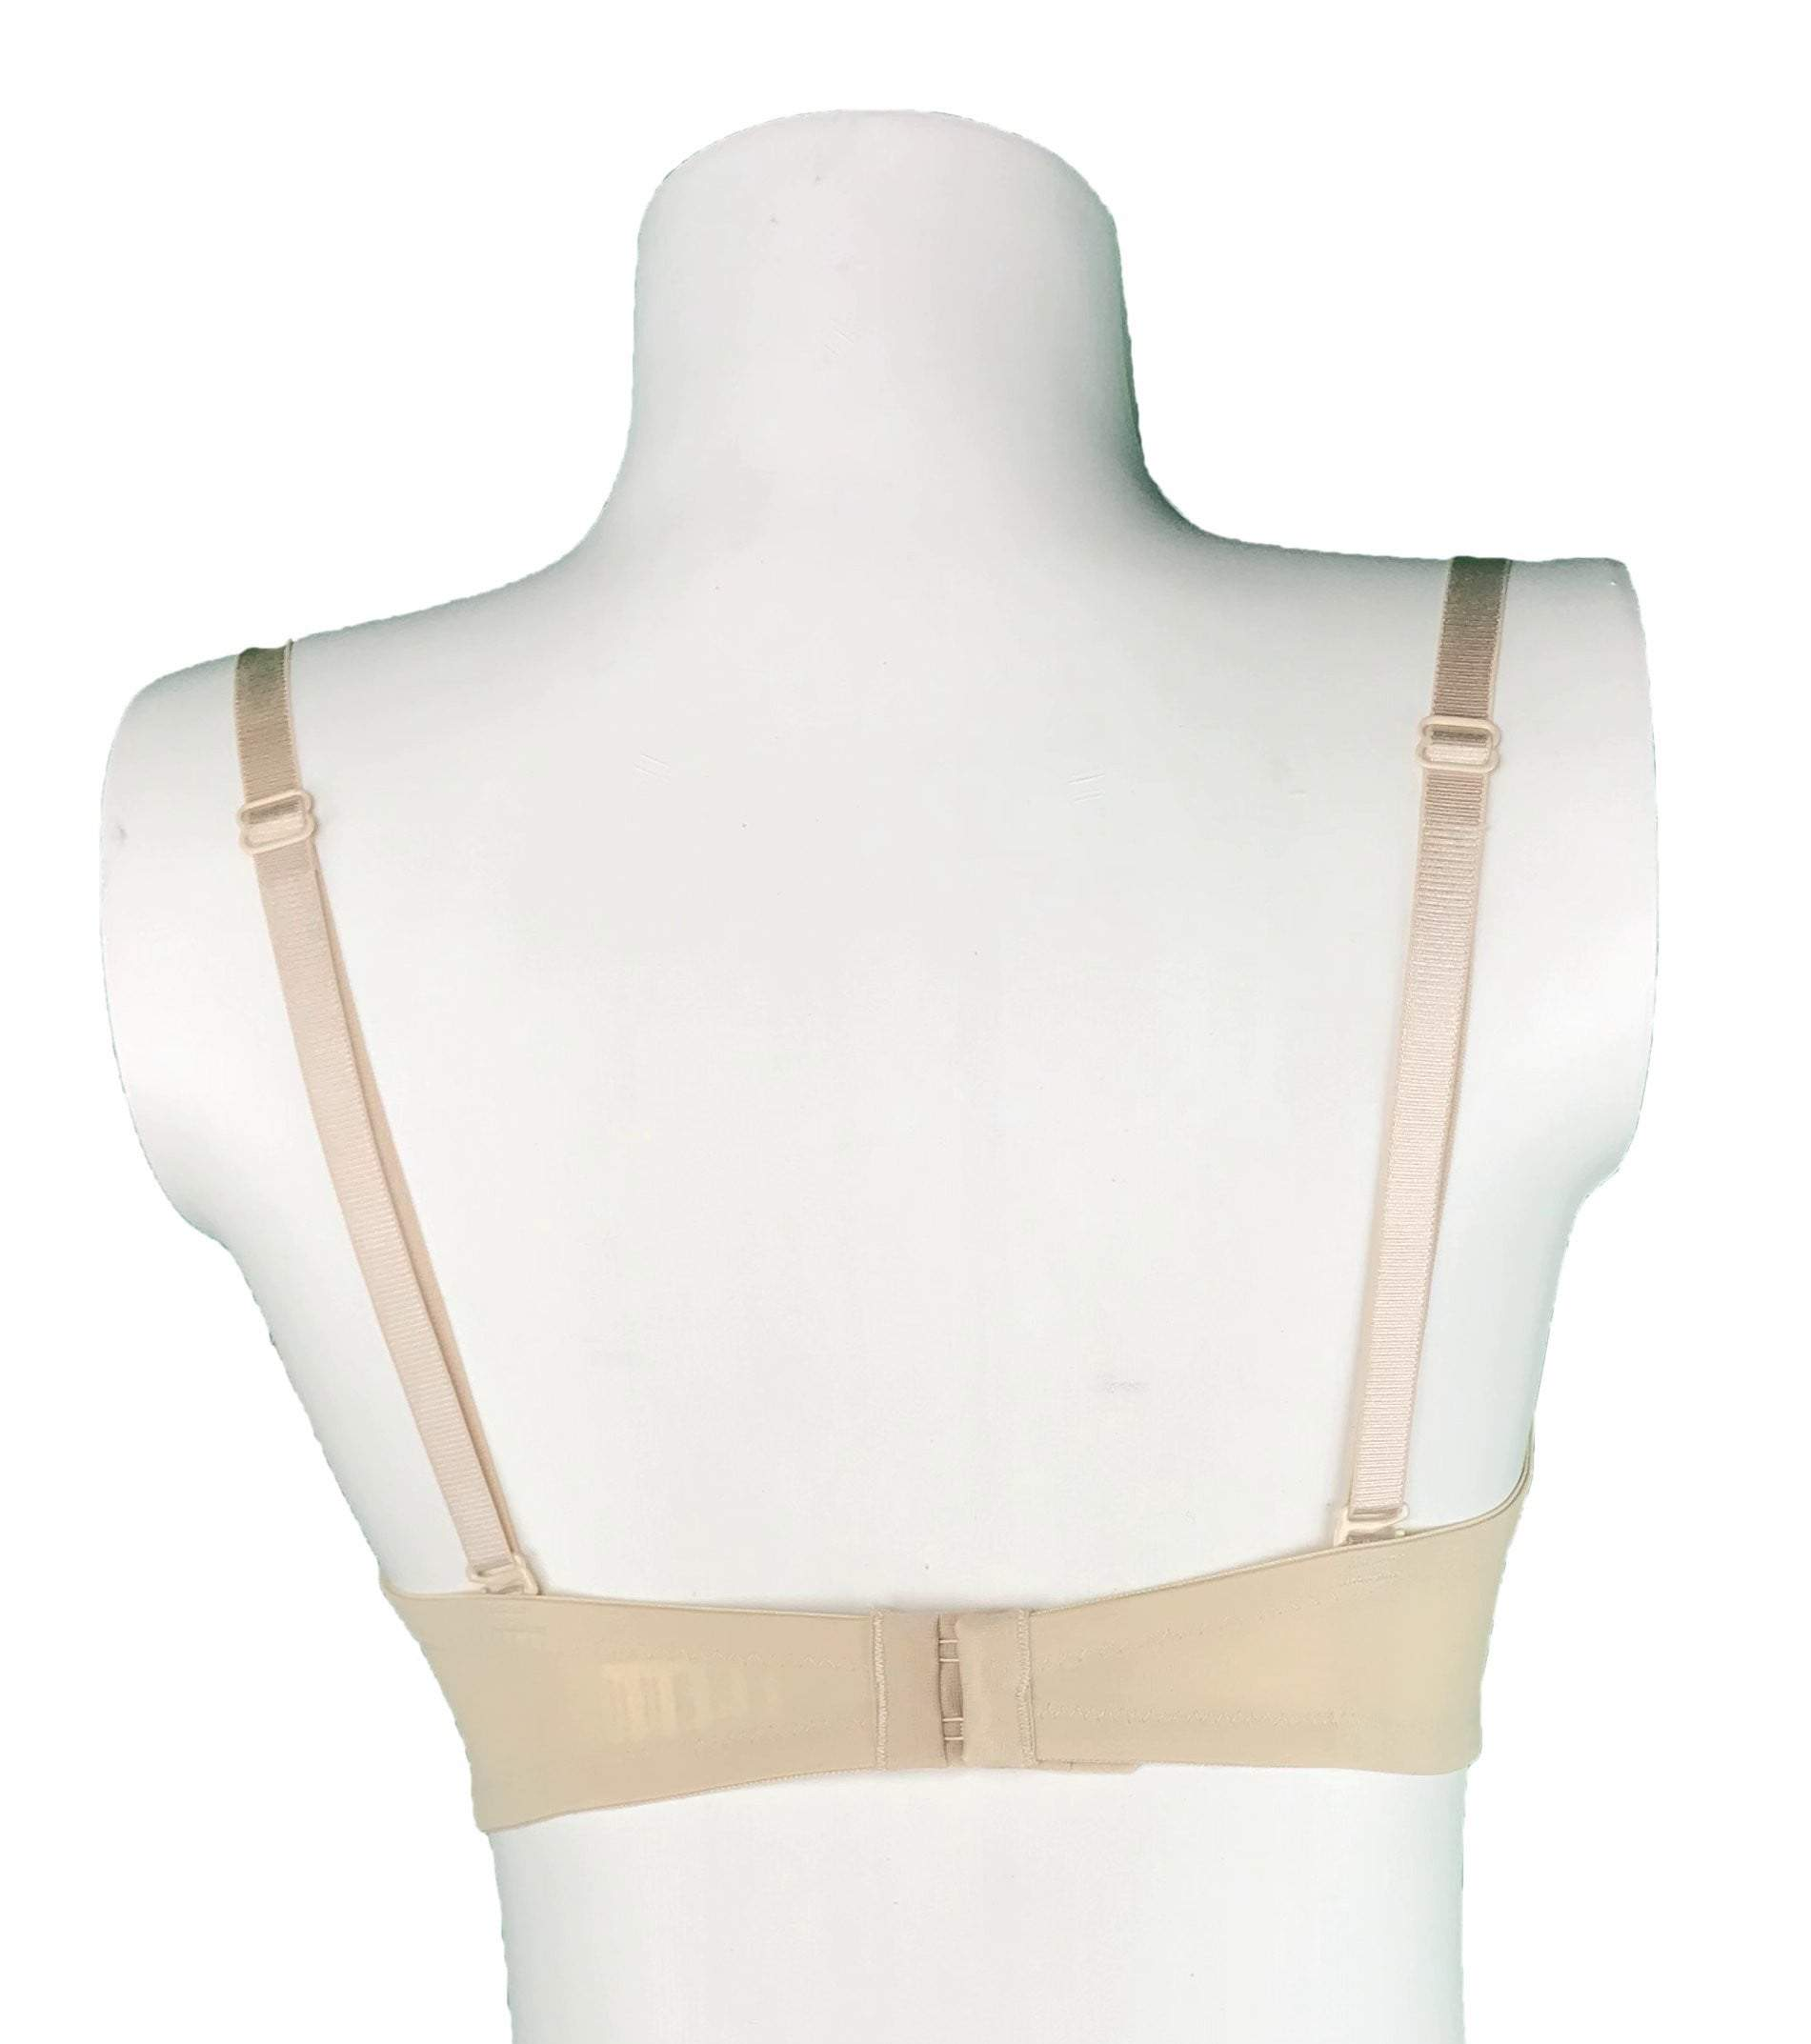 Padded Bra with Removable Straps